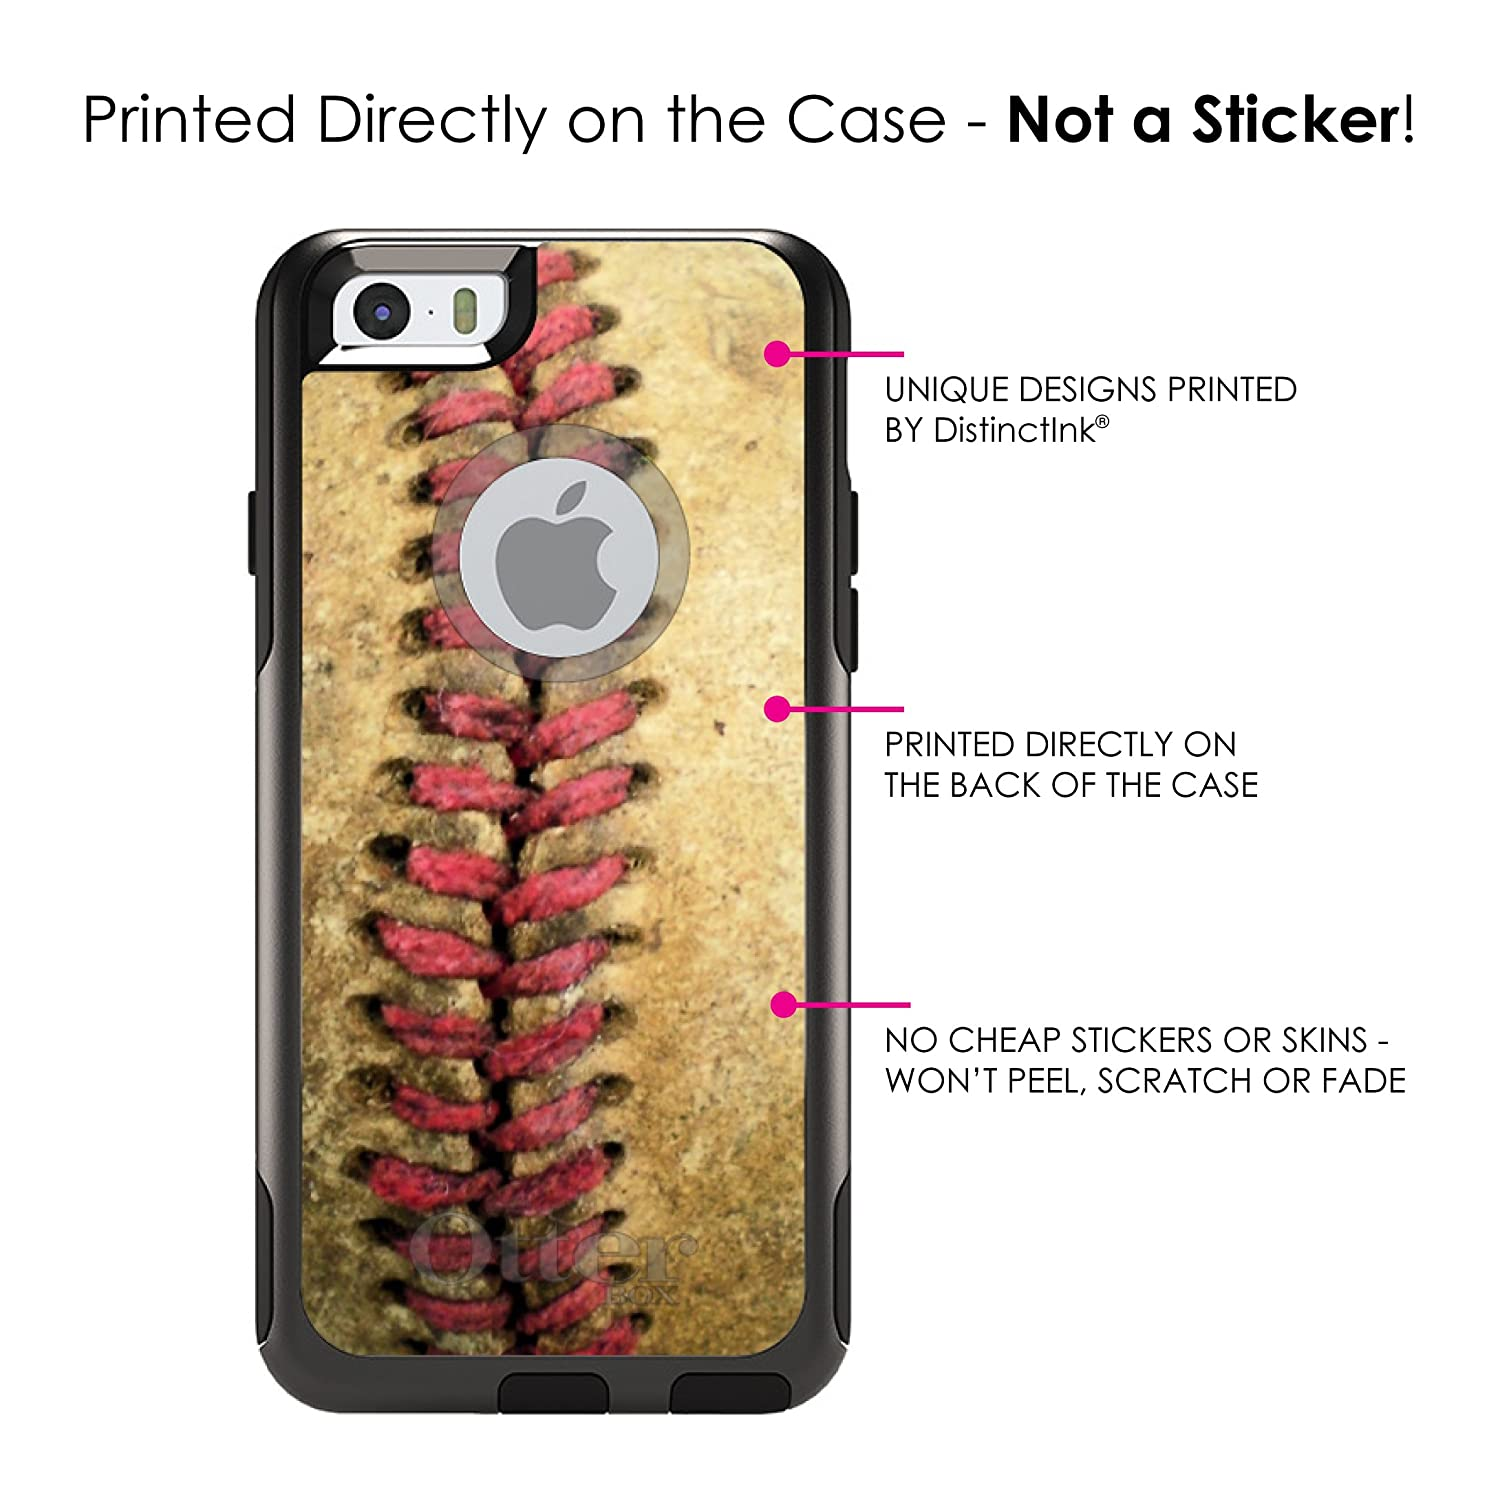 68fc45a5613 Amazon.com: DistinctInk Case for iPhone 6 Plus / 6S Plus - OtterBox Commuter  Black Custom Case - Old Baseball Stitch - Show Your Love of Baseball: Cell  ...